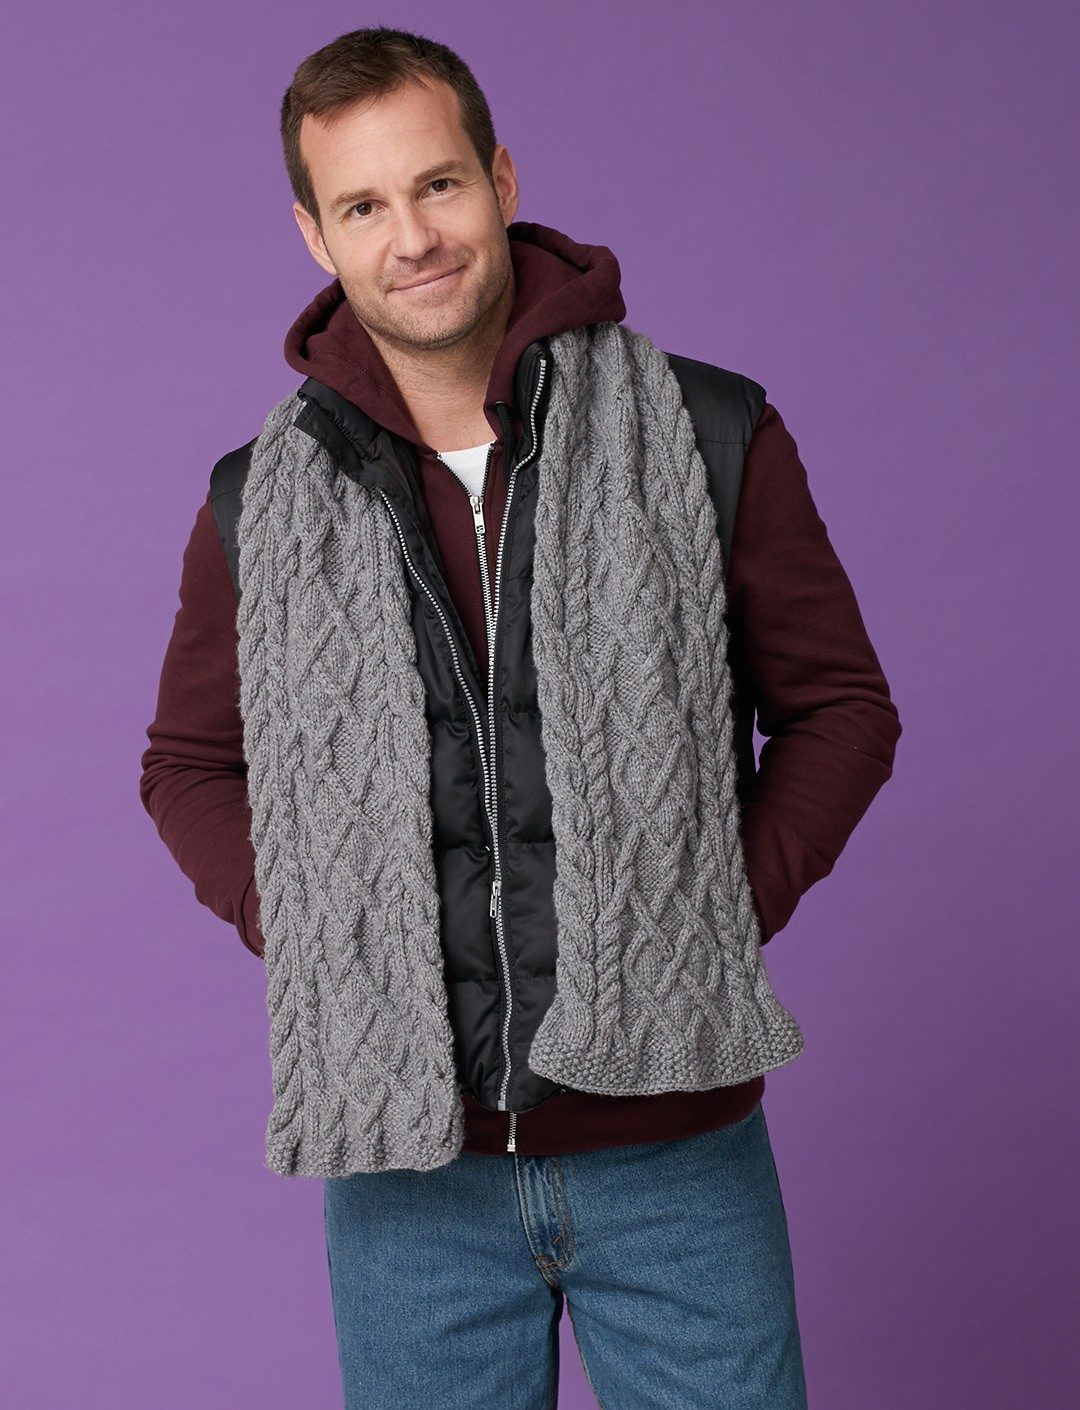 Mens Knit Patterns : Caron Mens Cabled Scarf, Knit Pattern Yarnspirations